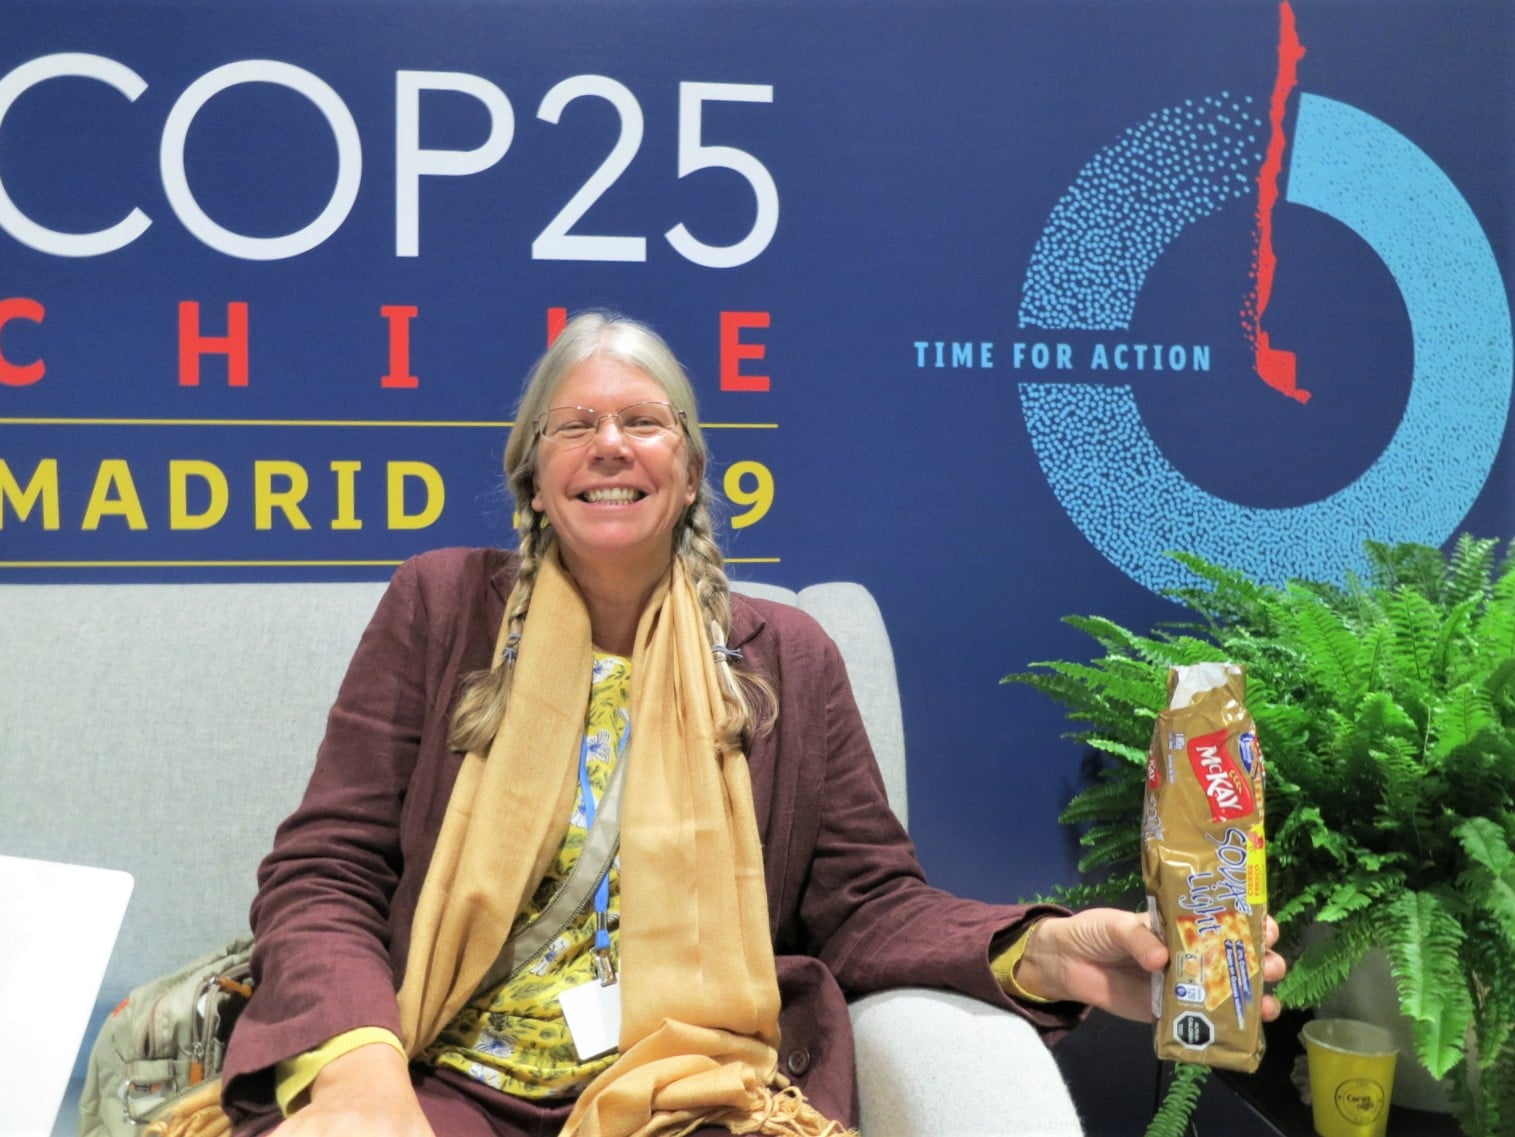 """Sonja Thunberg"" relaxing with crackers in front of the COP25 Logo.  It says, ""Time for Action"" and reminds us all of the cycle of time."